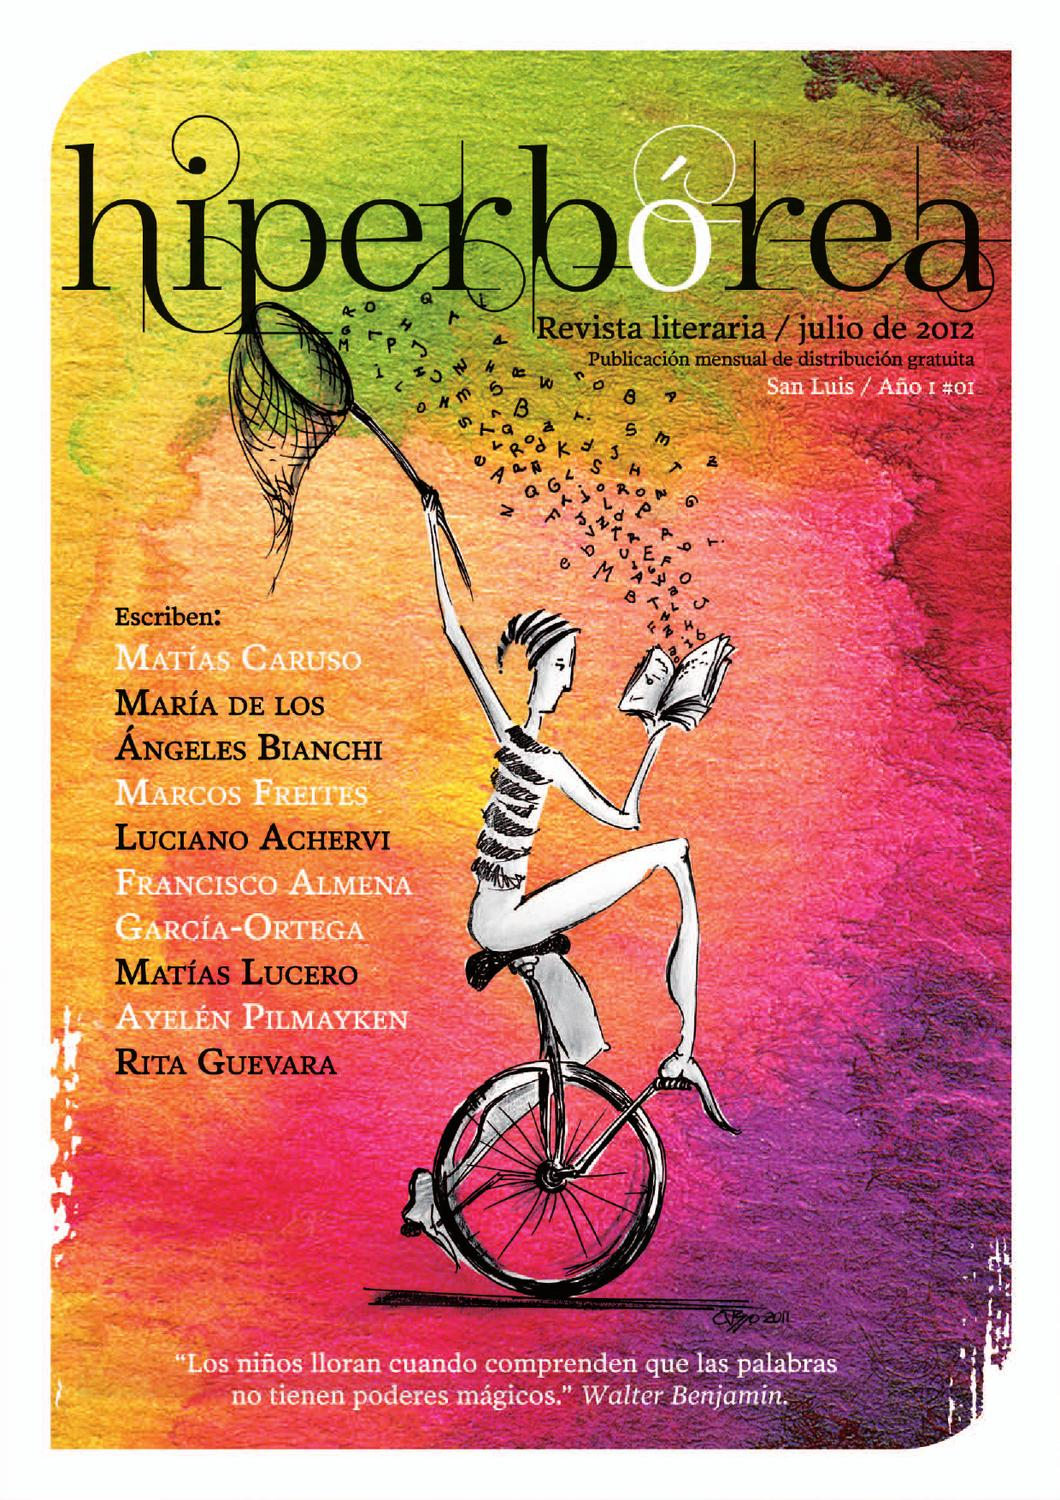 Hiperbórea #01 by Hiperborea Revista - issuu